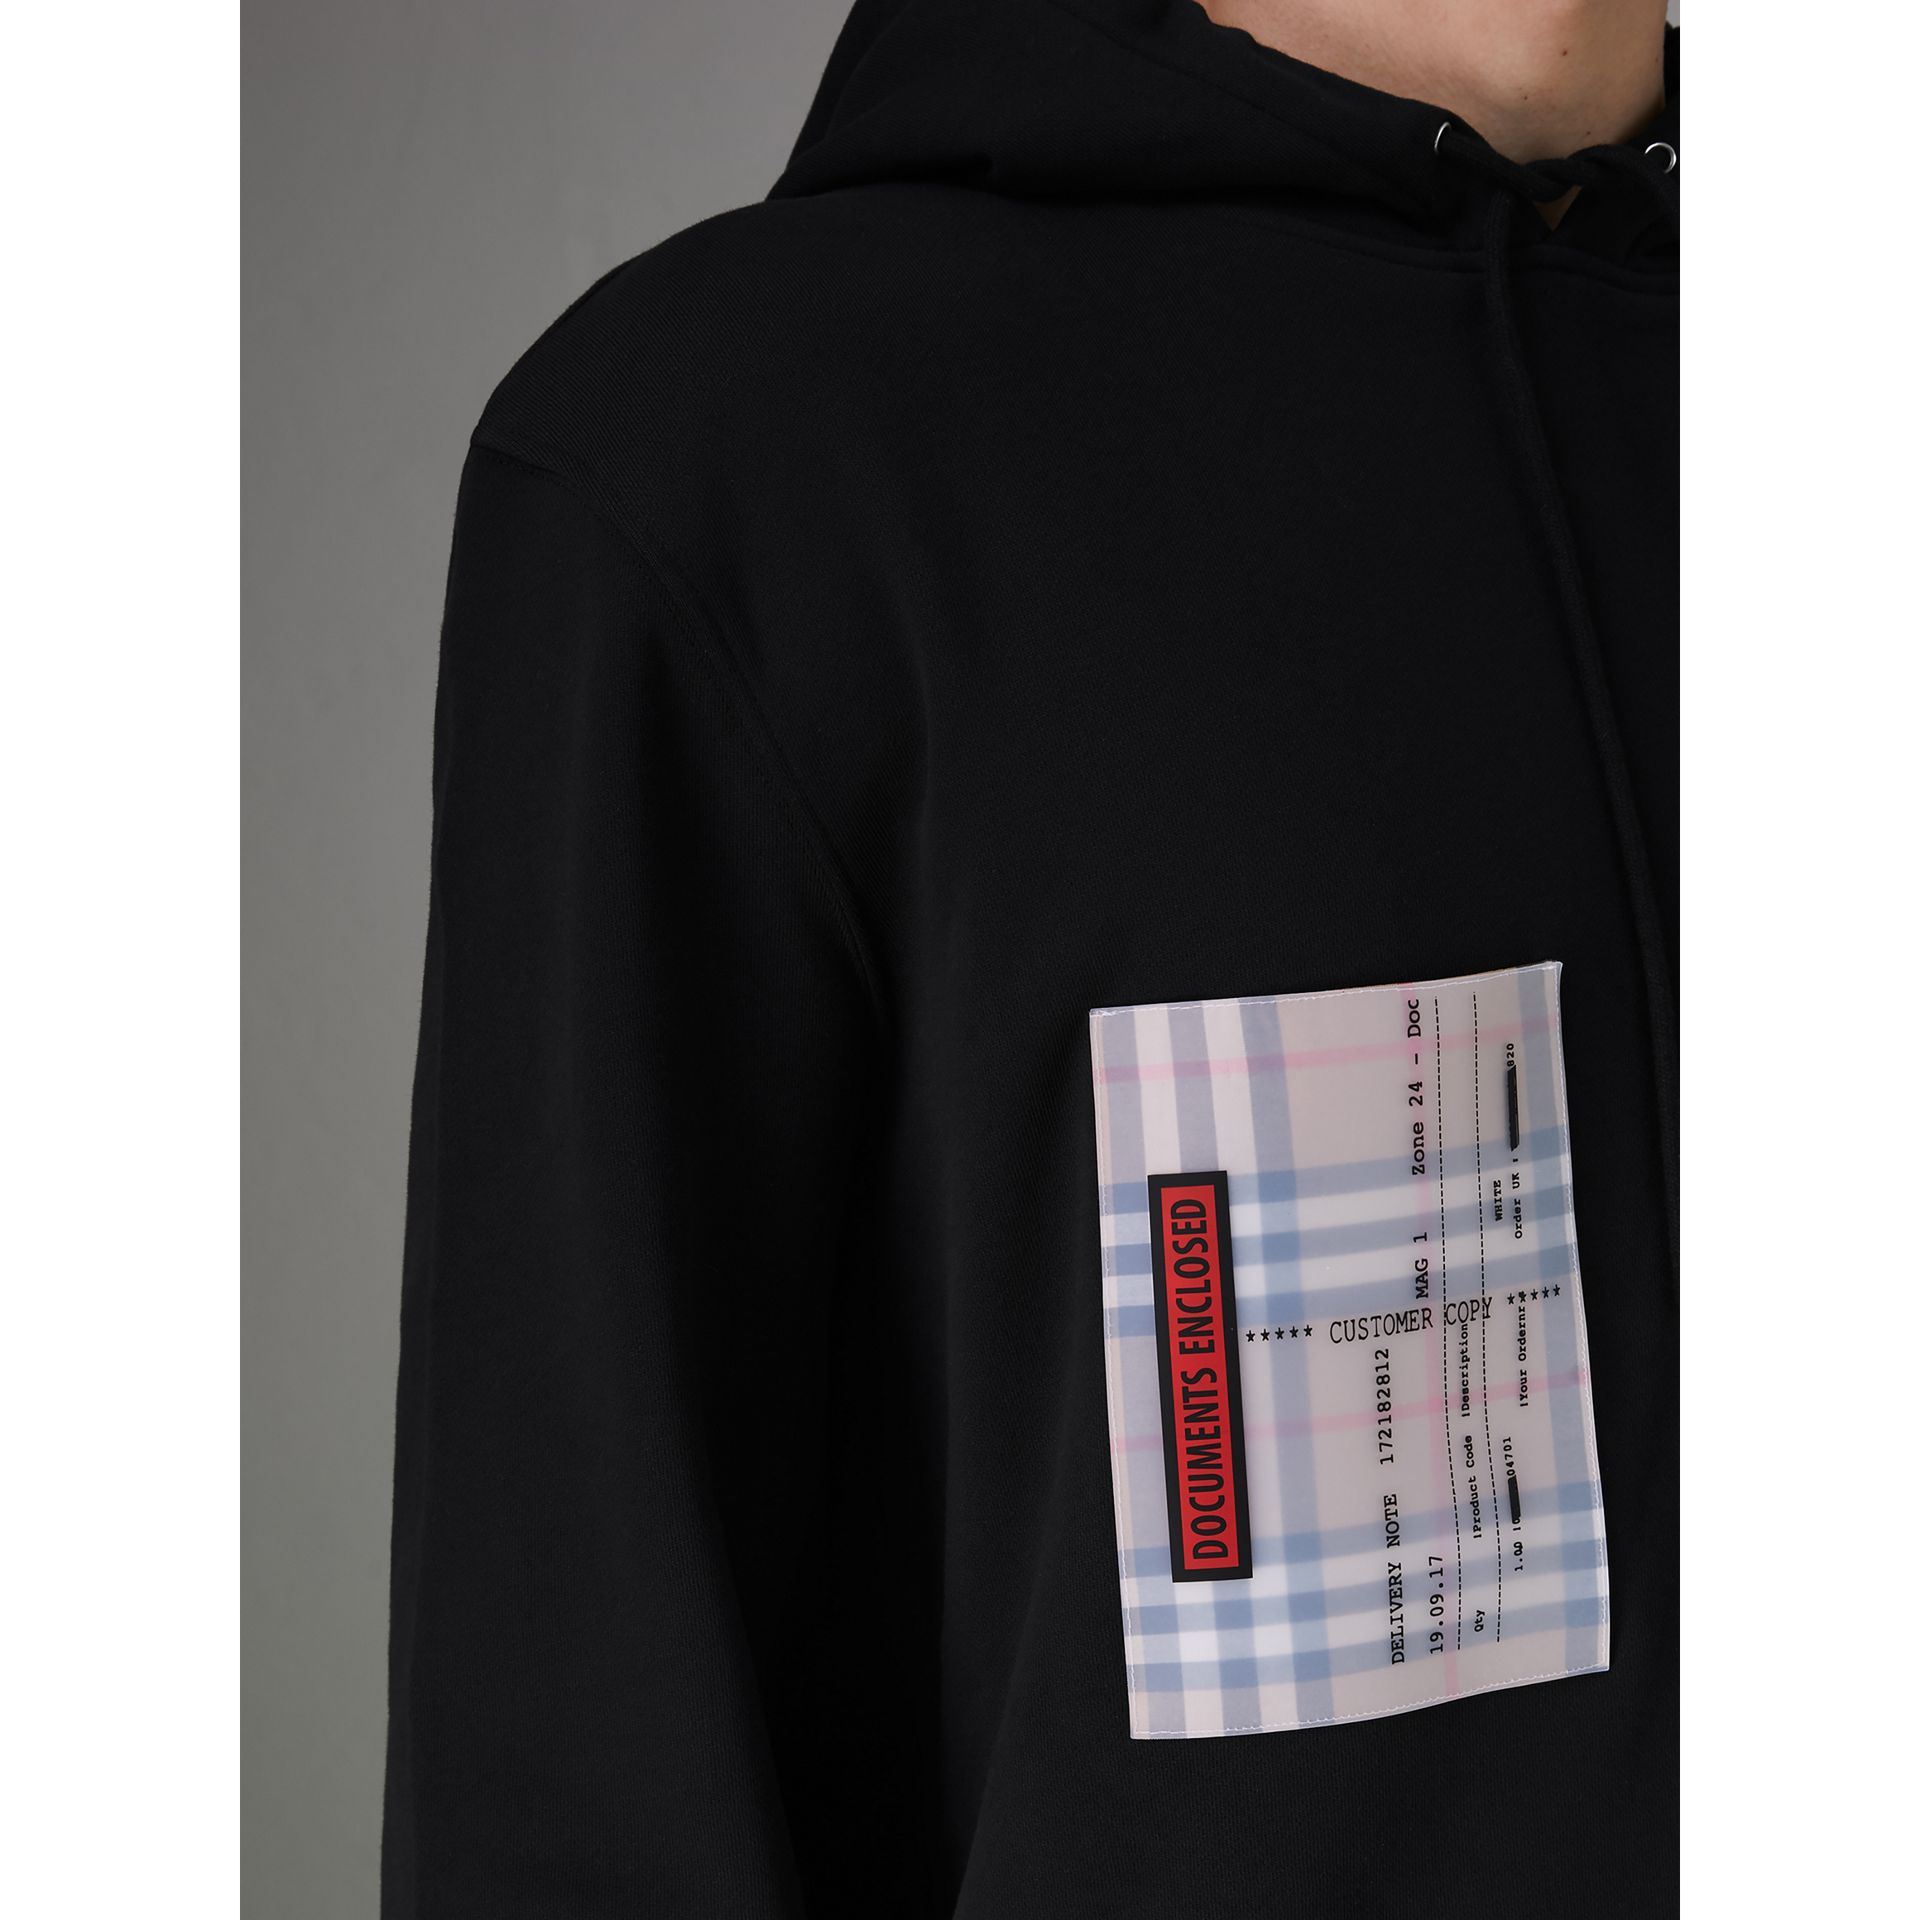 Ticket Print Pocket Cotton Jersey Hoodie in Black - Men | Burberry Hong Kong - gallery image 1